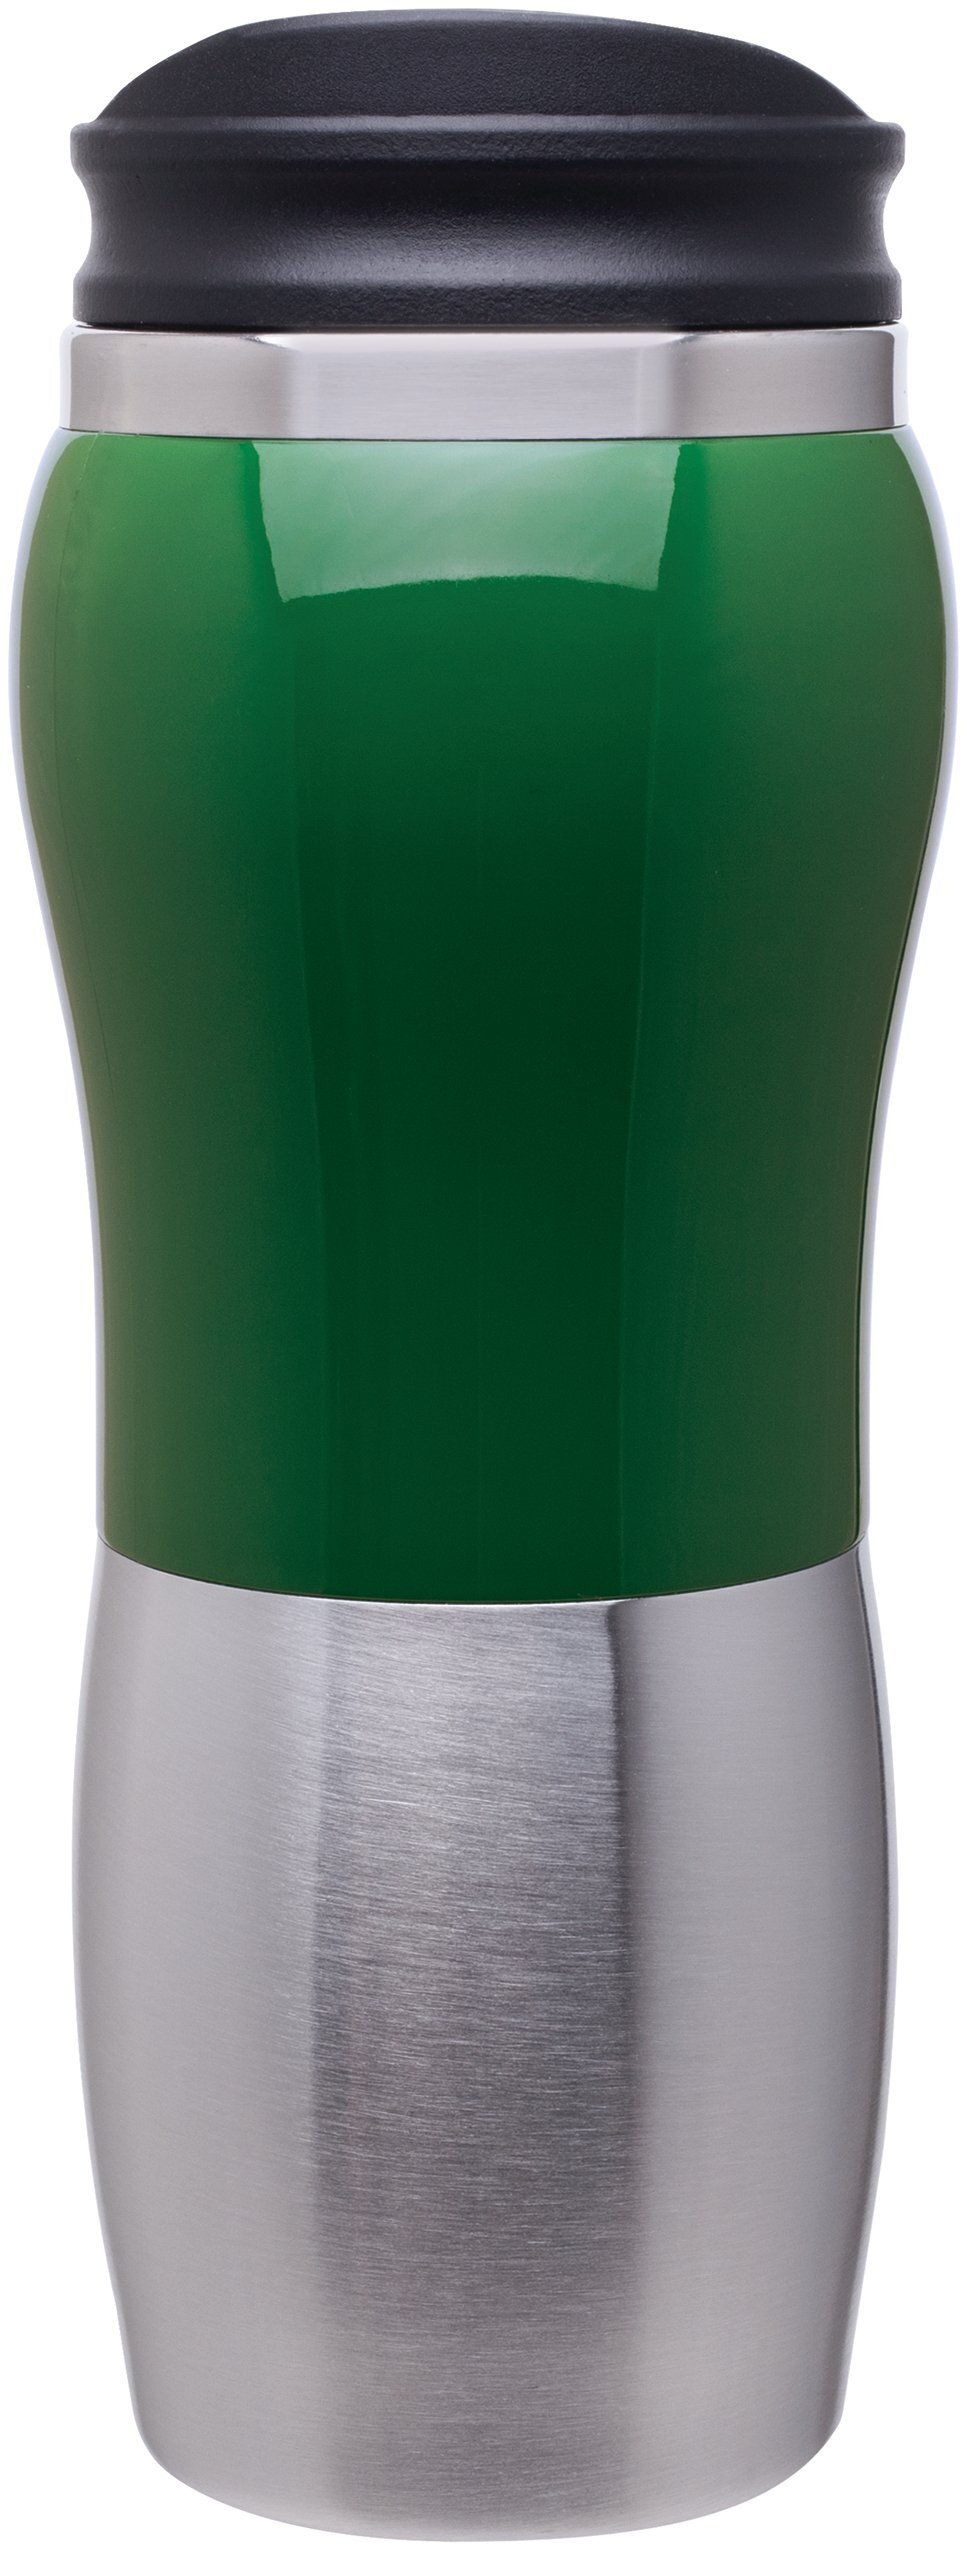 Maui Fusion Stainless Steel Travel Tumbler, 14oz. - Free Set Up Charges!